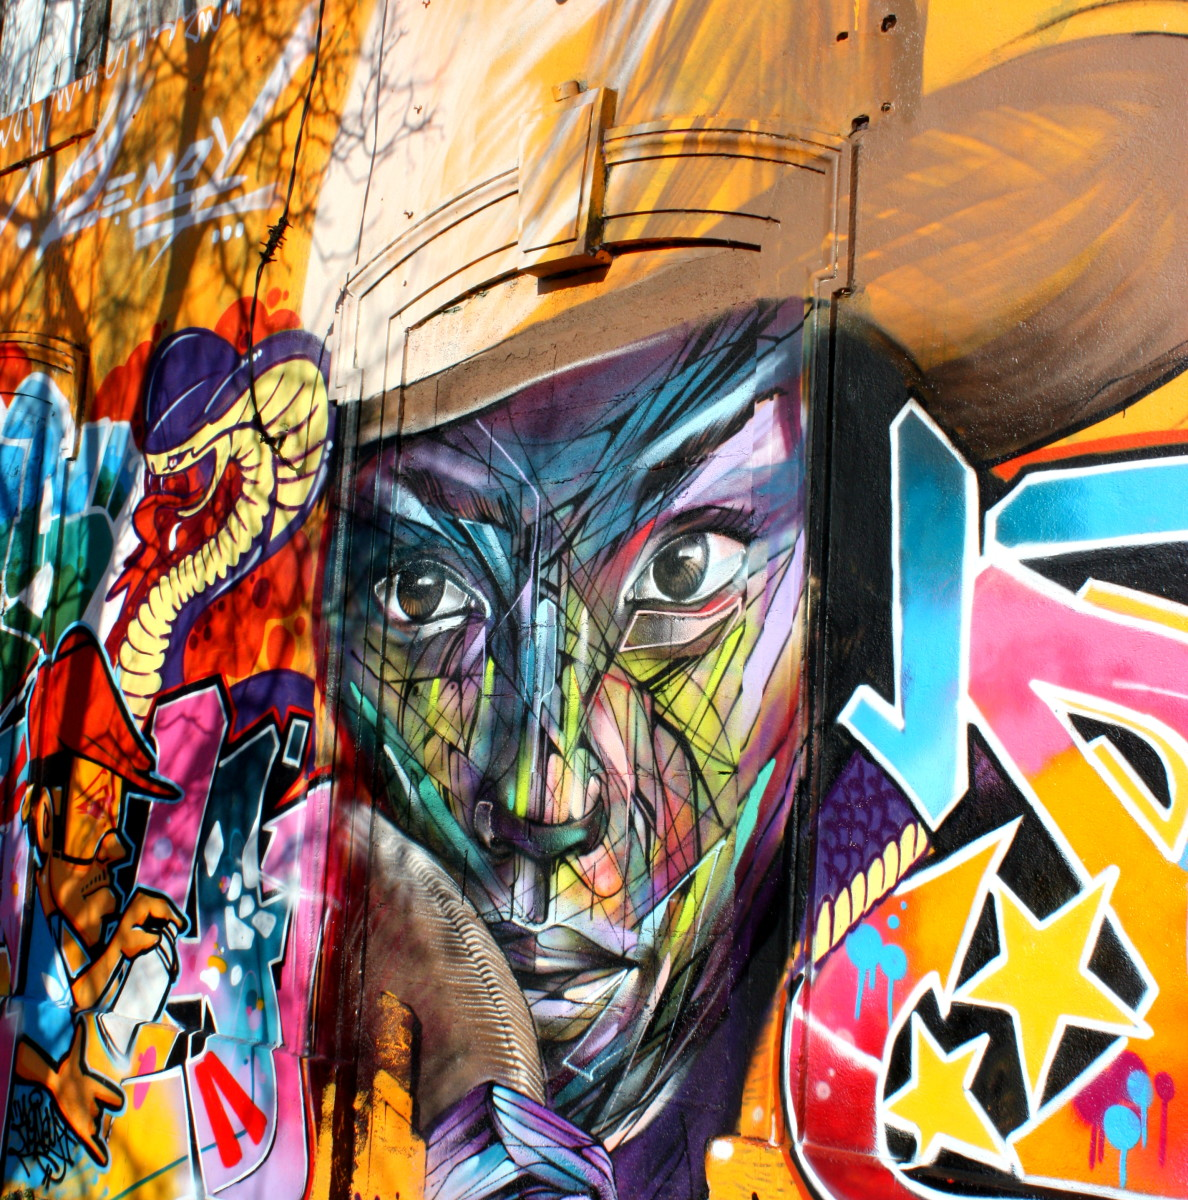 Face - graffiti art - La Rochelle